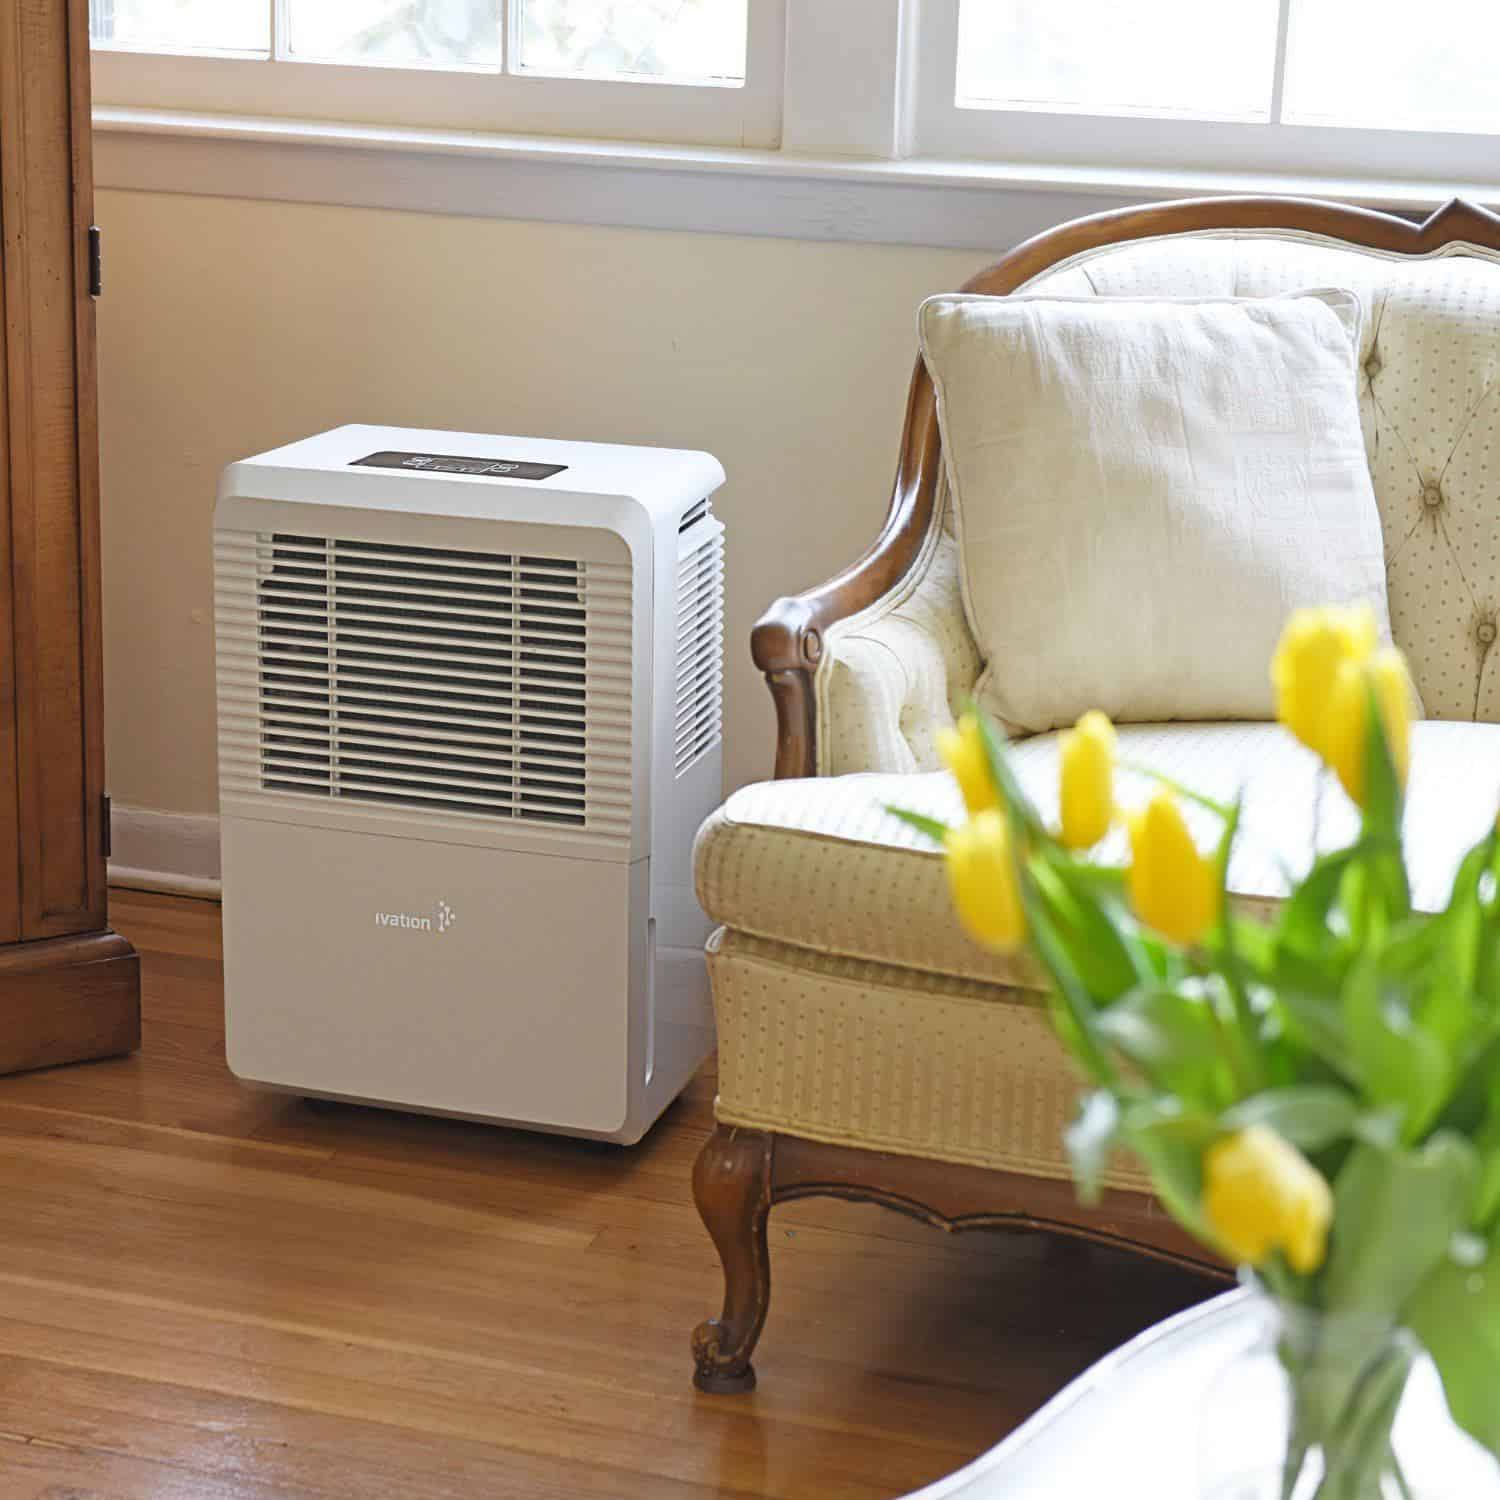 Best 70 Pint Dehumidifier Reviews Humidity Helper